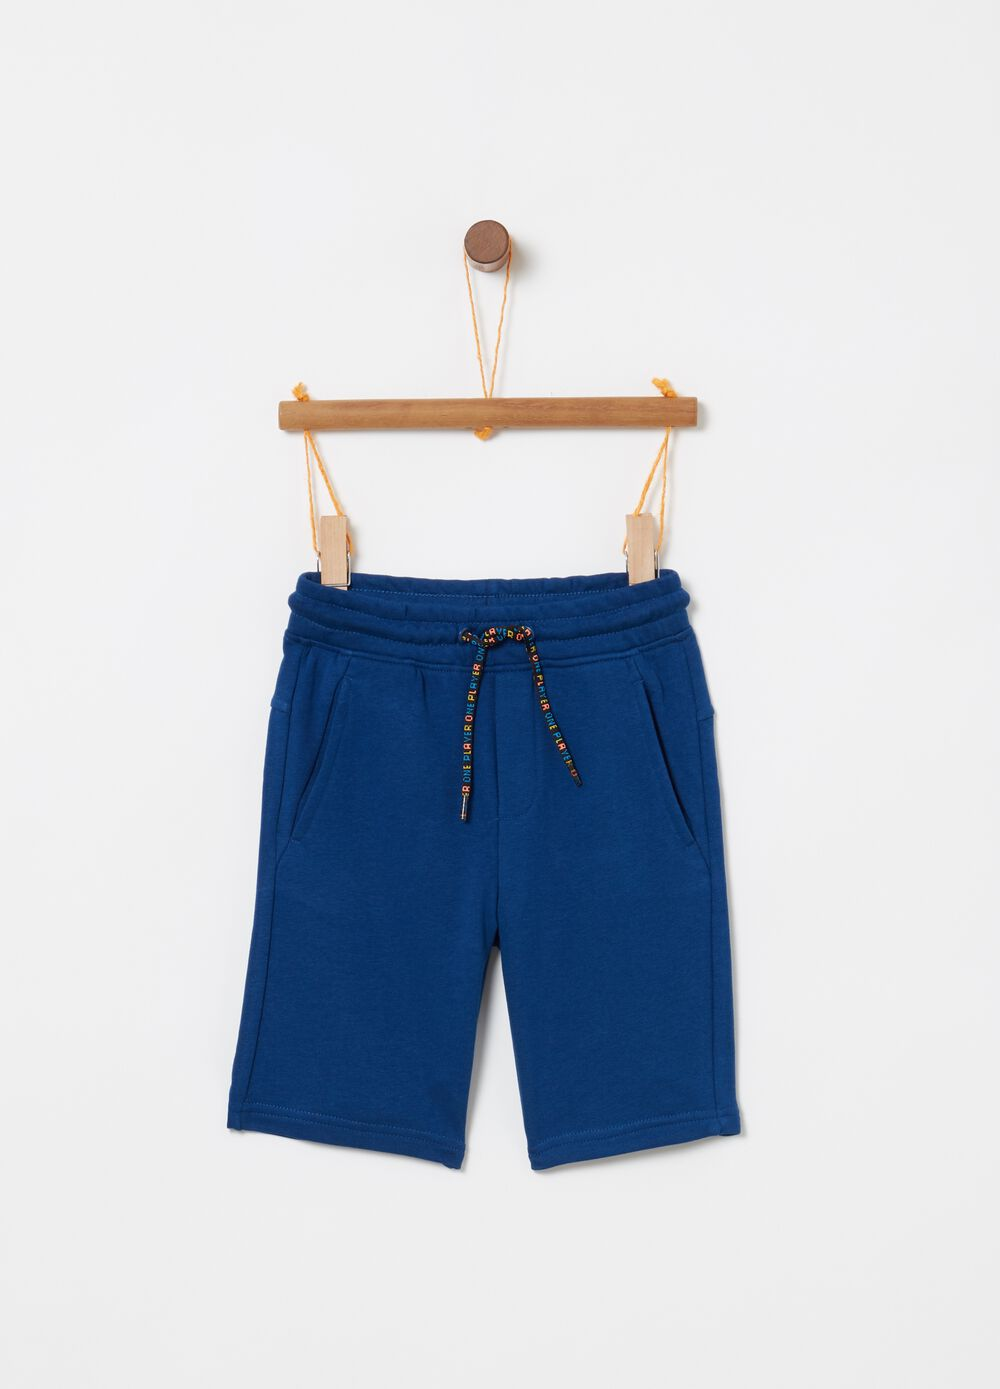 Solid colour shorts with drawstring